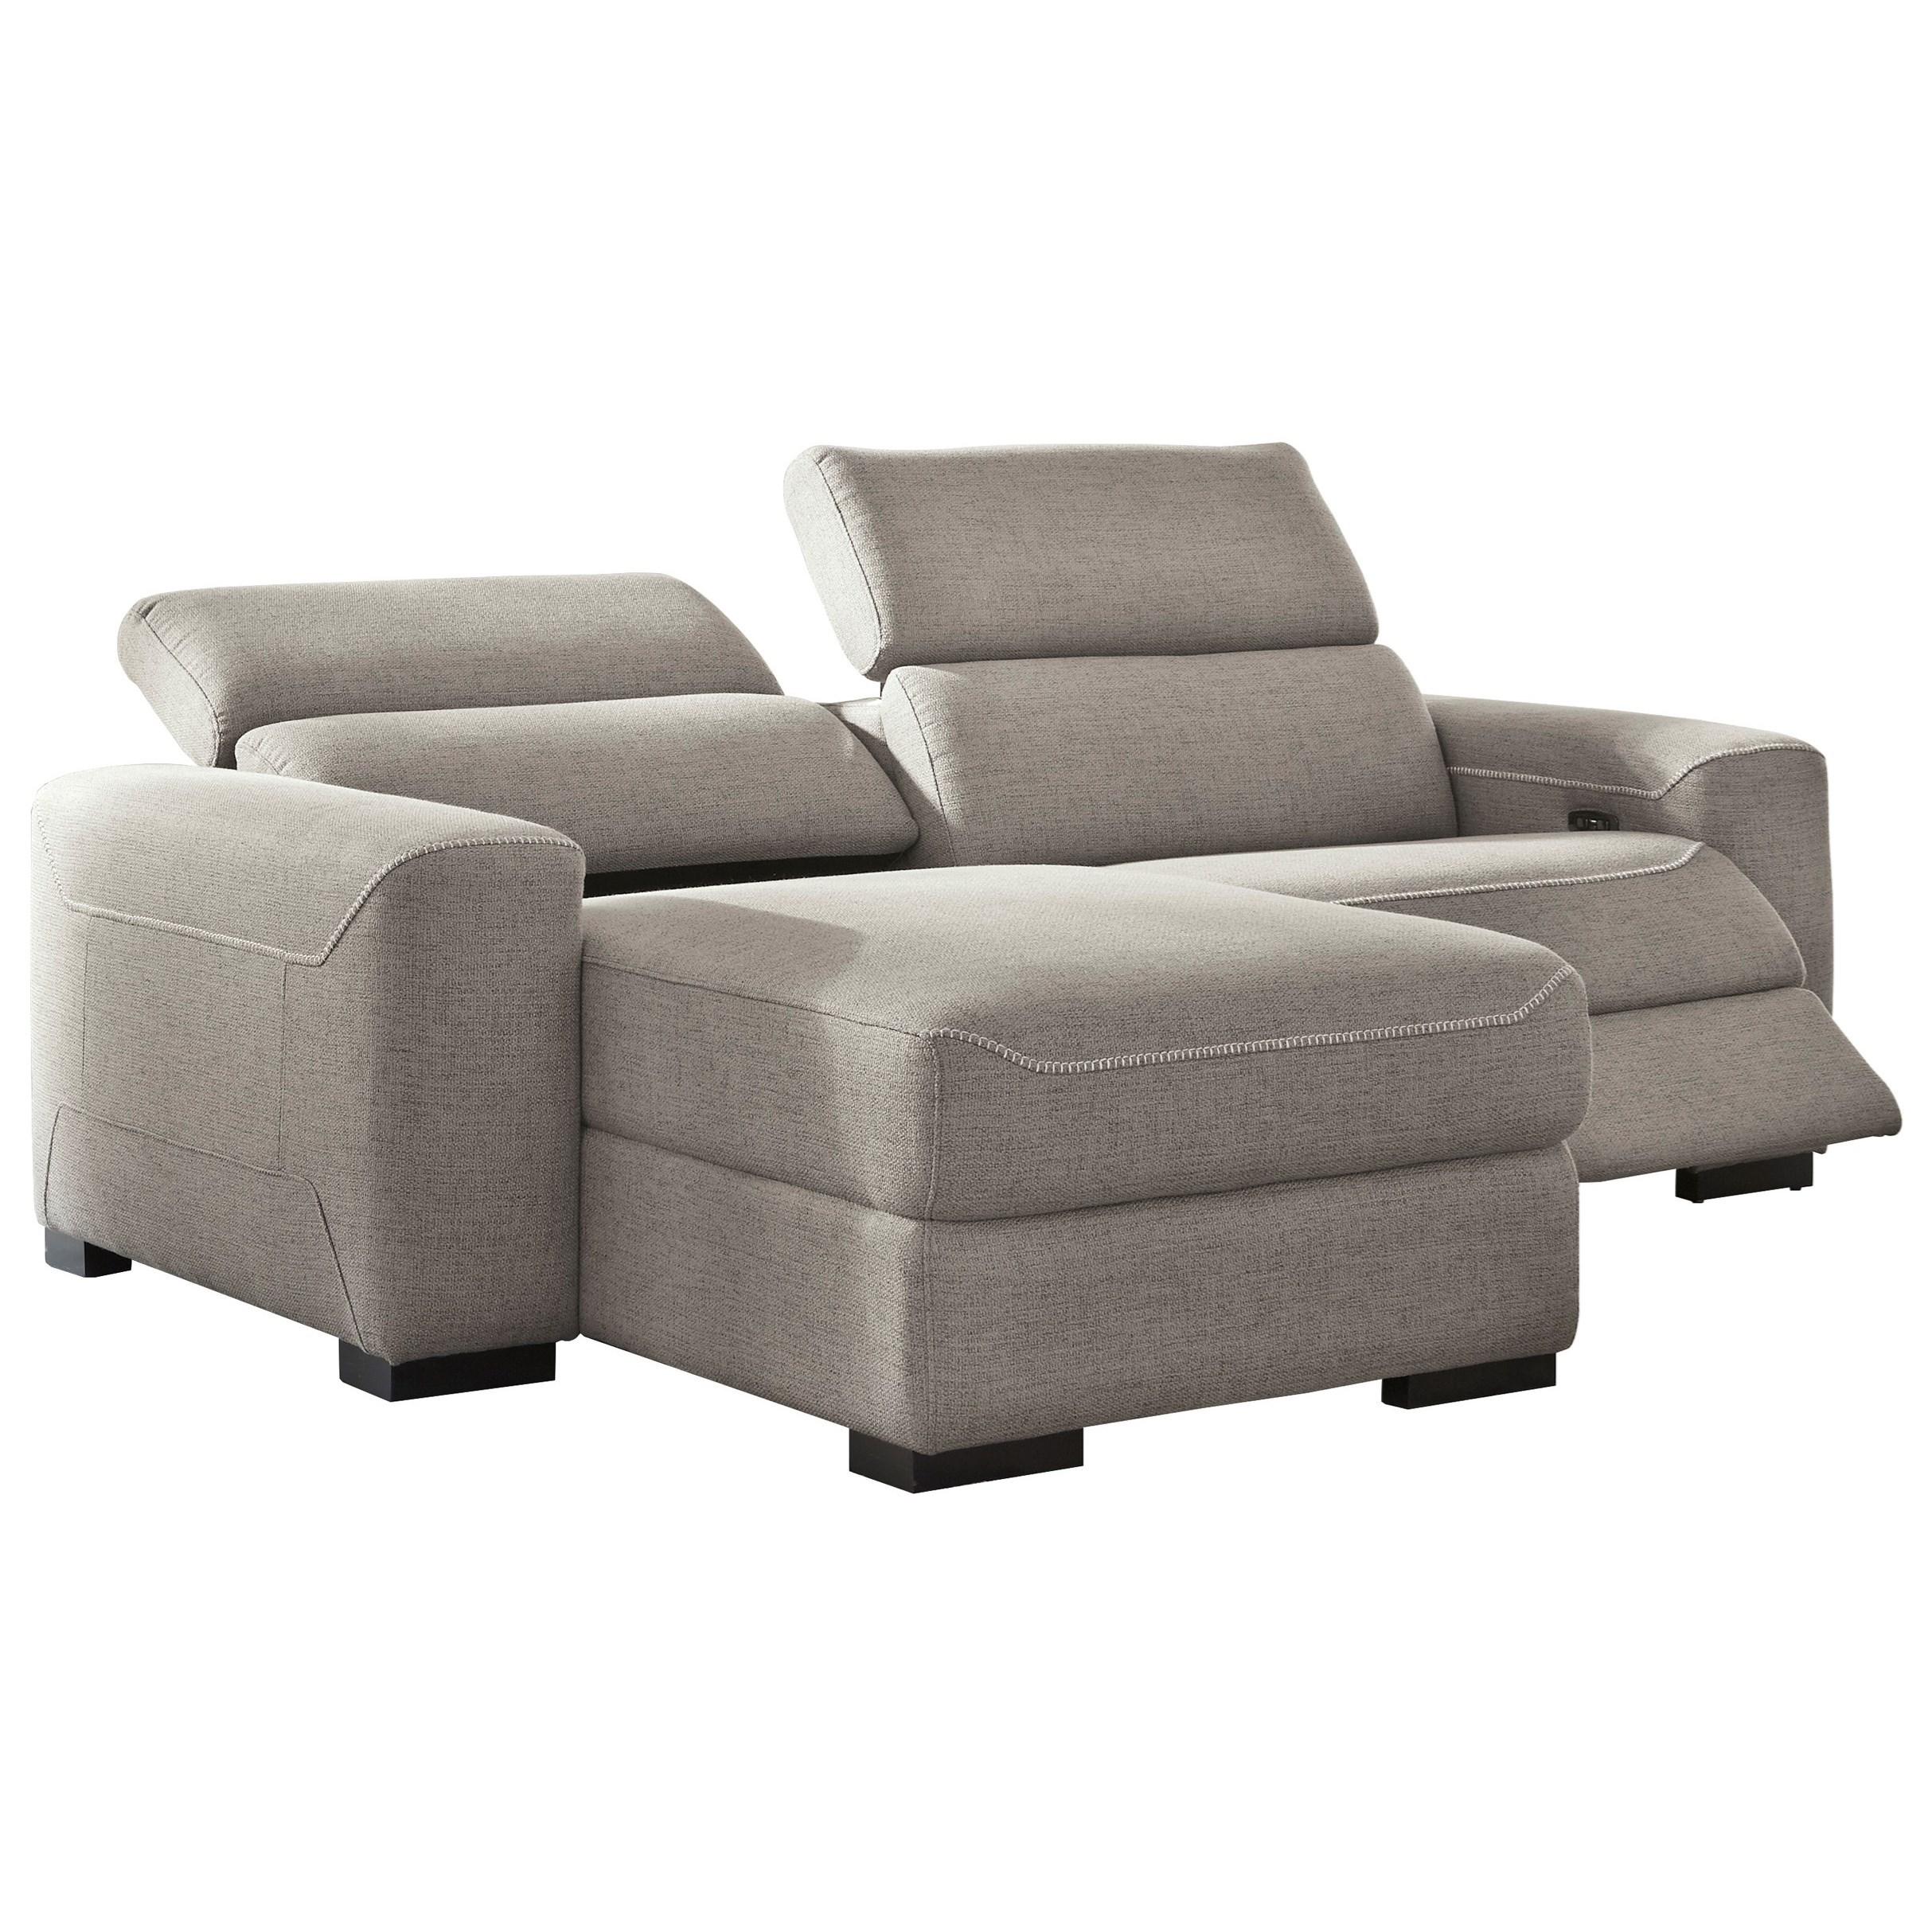 Mabton 2-Piece Power Reclining Sectional w/ Chaise by Ashley (Signature Design) at Johnny Janosik